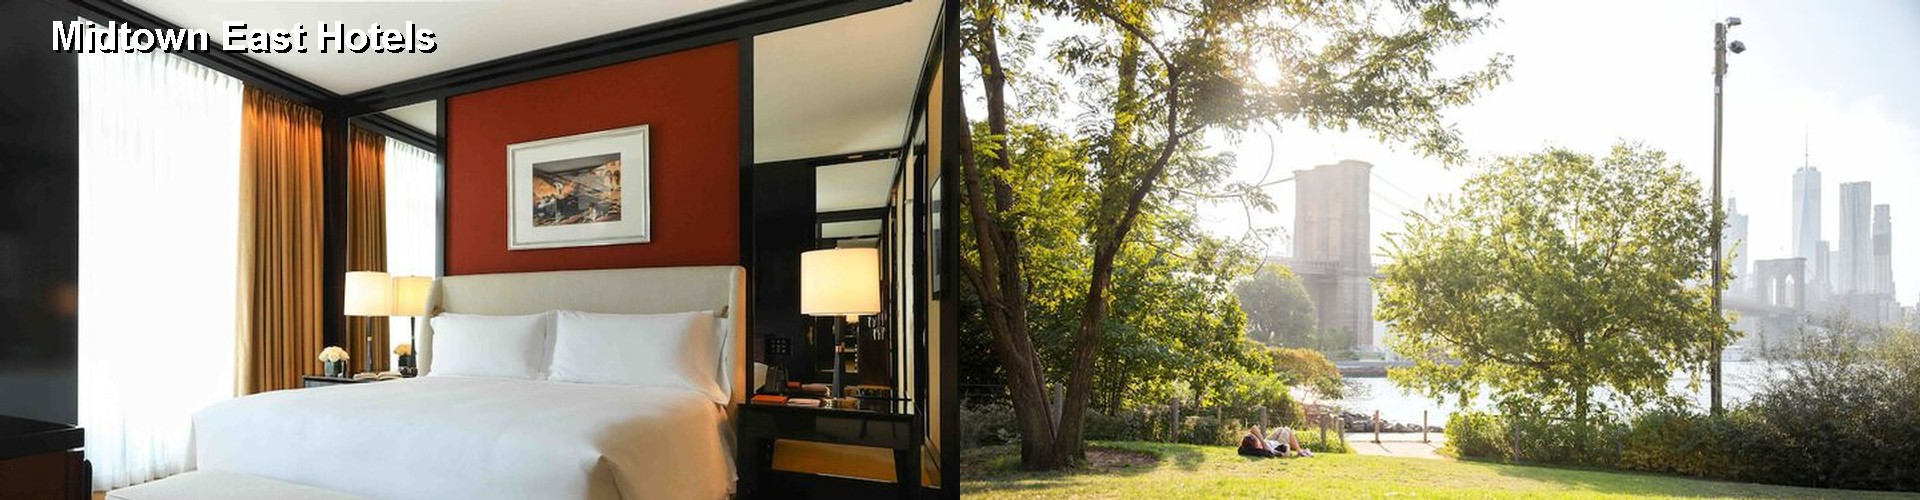 5 Best Hotels Near Midtown East